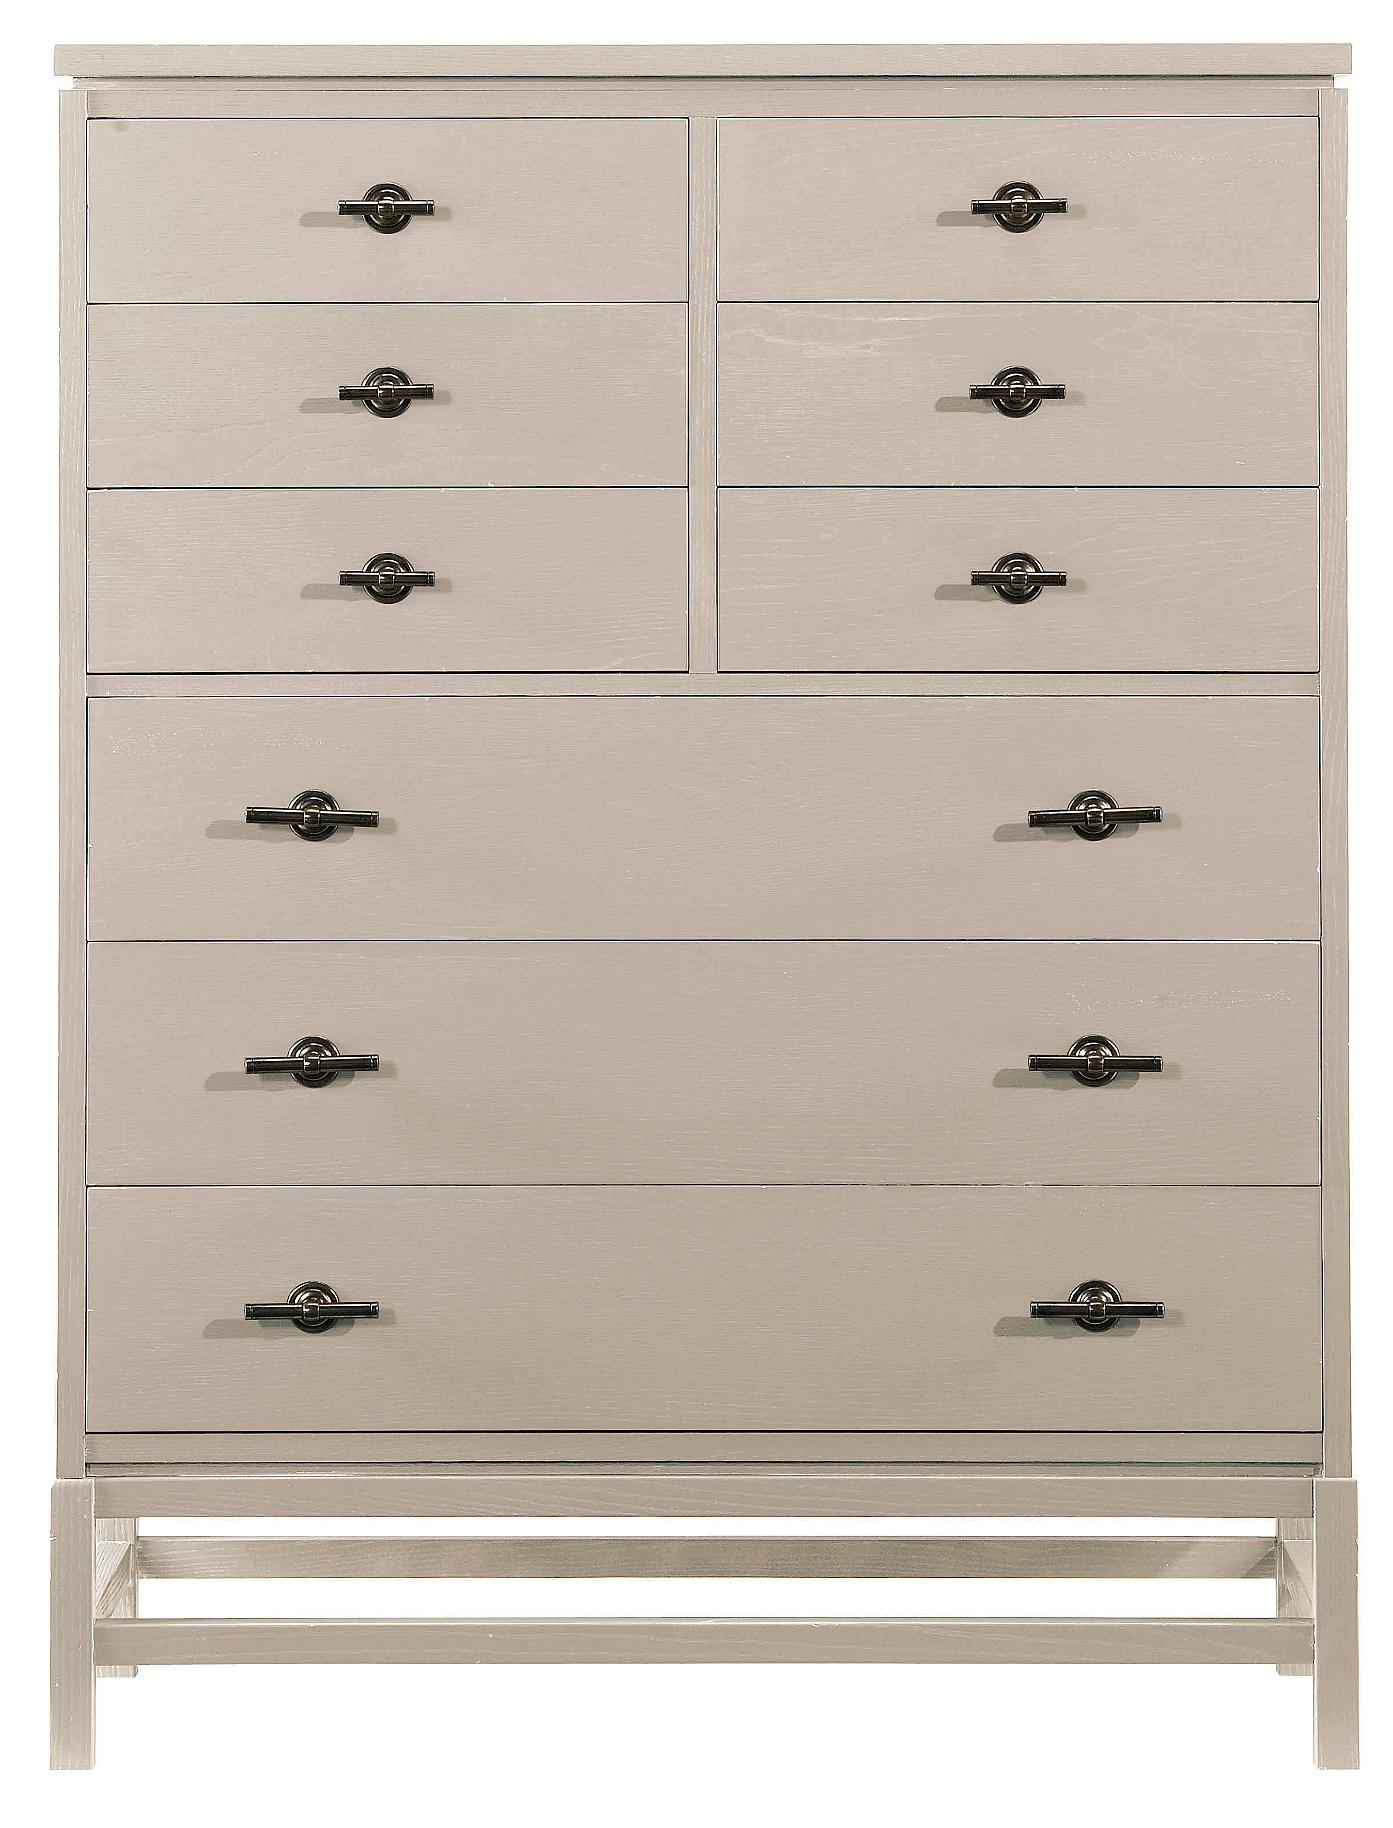 Stanley Furniture Coastal Living Resort Tranquility Isle Drawer Chest - Item Number: 062-D3-13